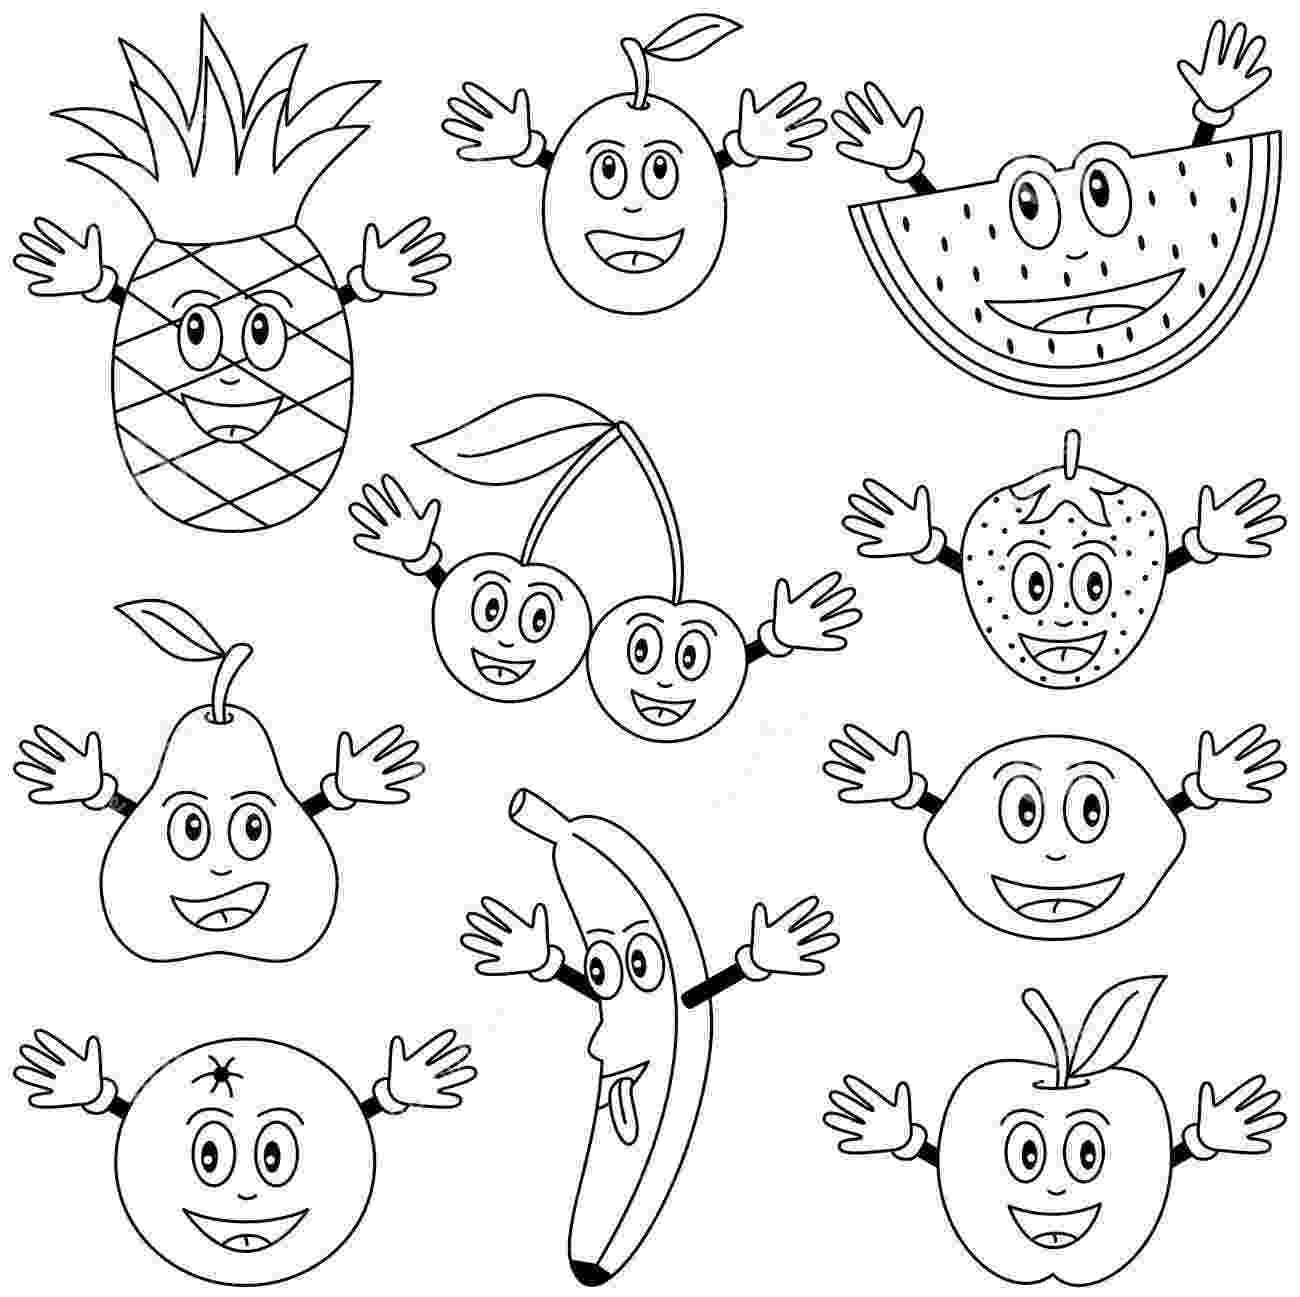 pictures of vegetables for preschoolers free grapes coloring page download free clip art free vegetables for preschoolers of pictures